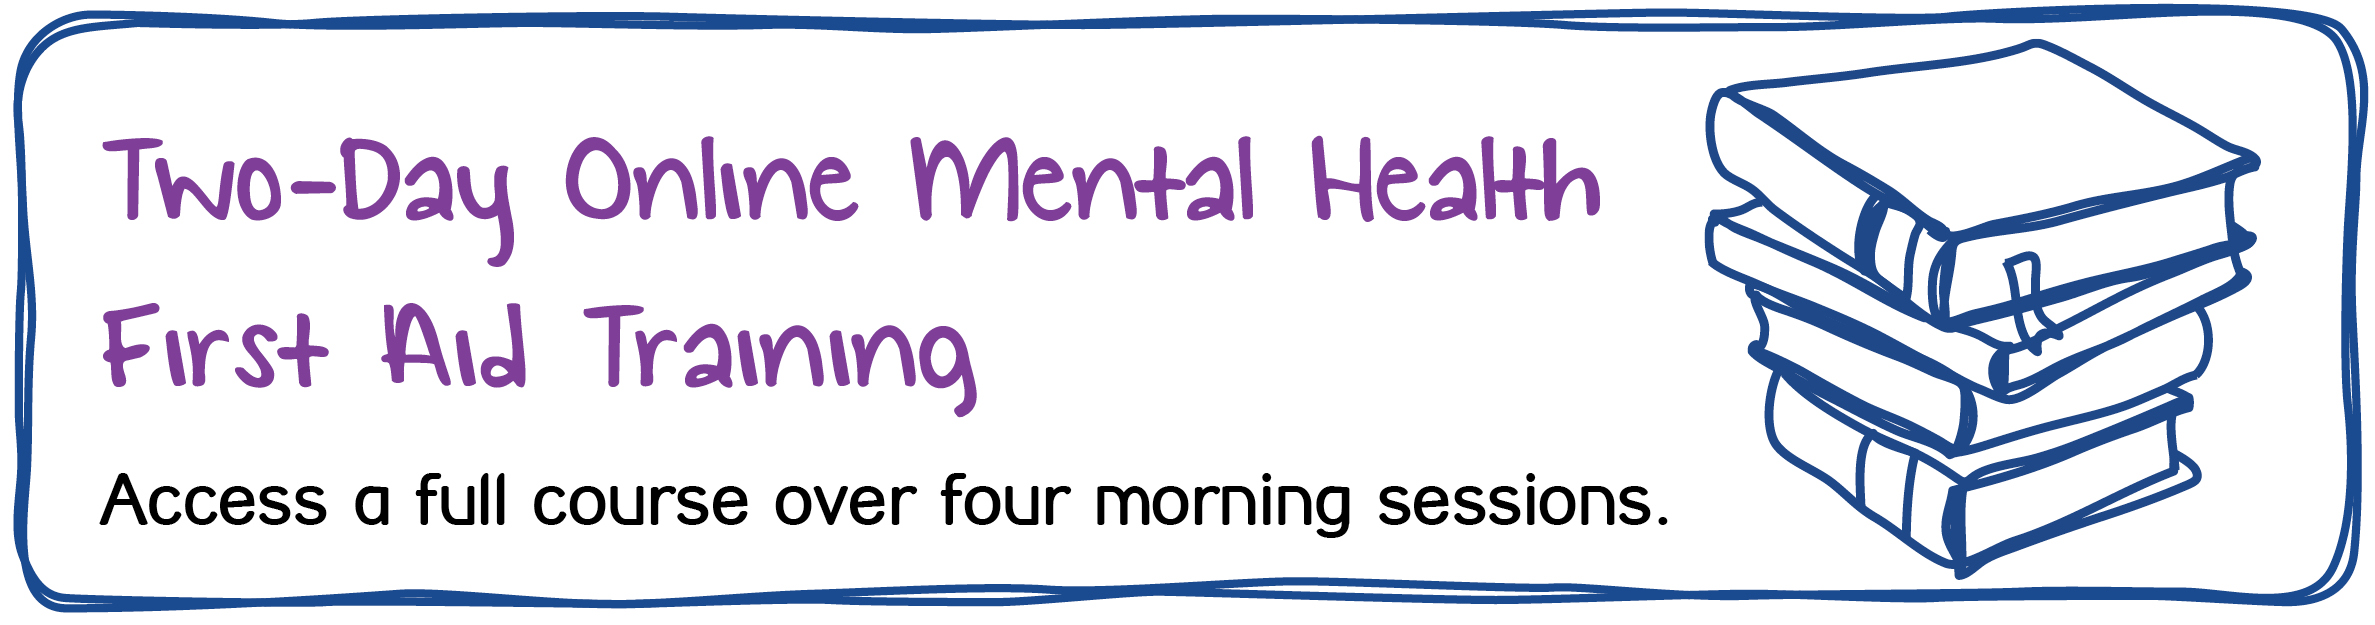 Two-Day Online Mental Health First Aid Training Access a full course over four morning sessions. Read more about our MHFA training below.